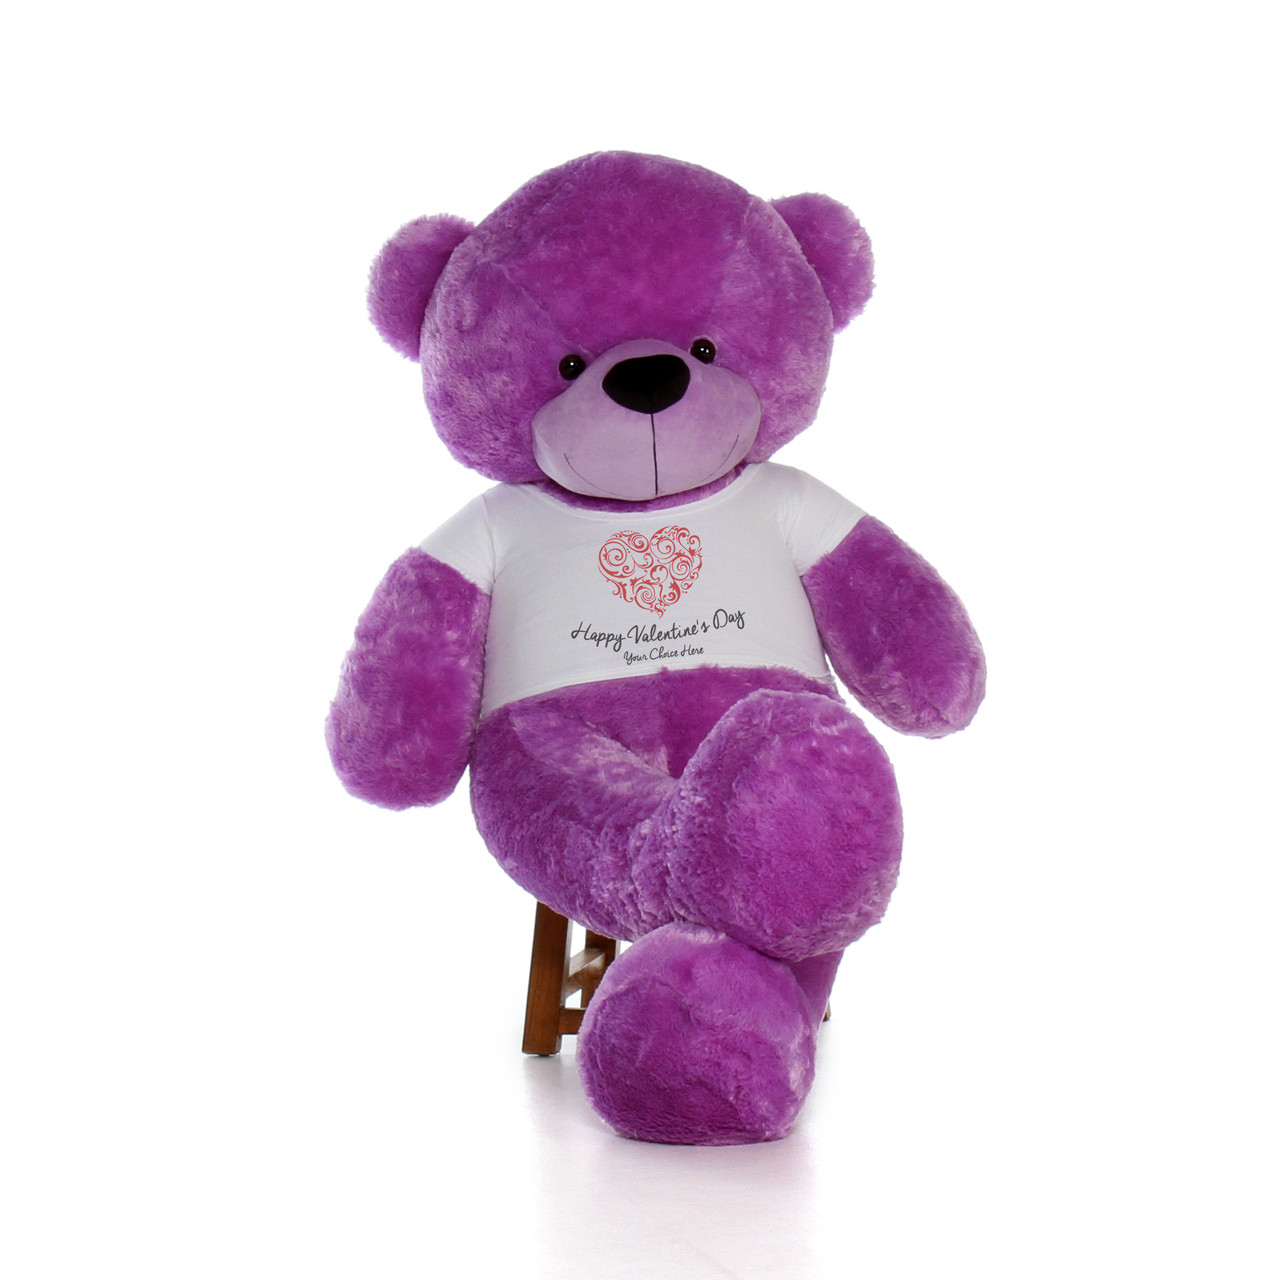 6ft life size happy valentines day teddy bears customize your fur color and shirt text choices - Giant Teddy Bear For Valentines Day